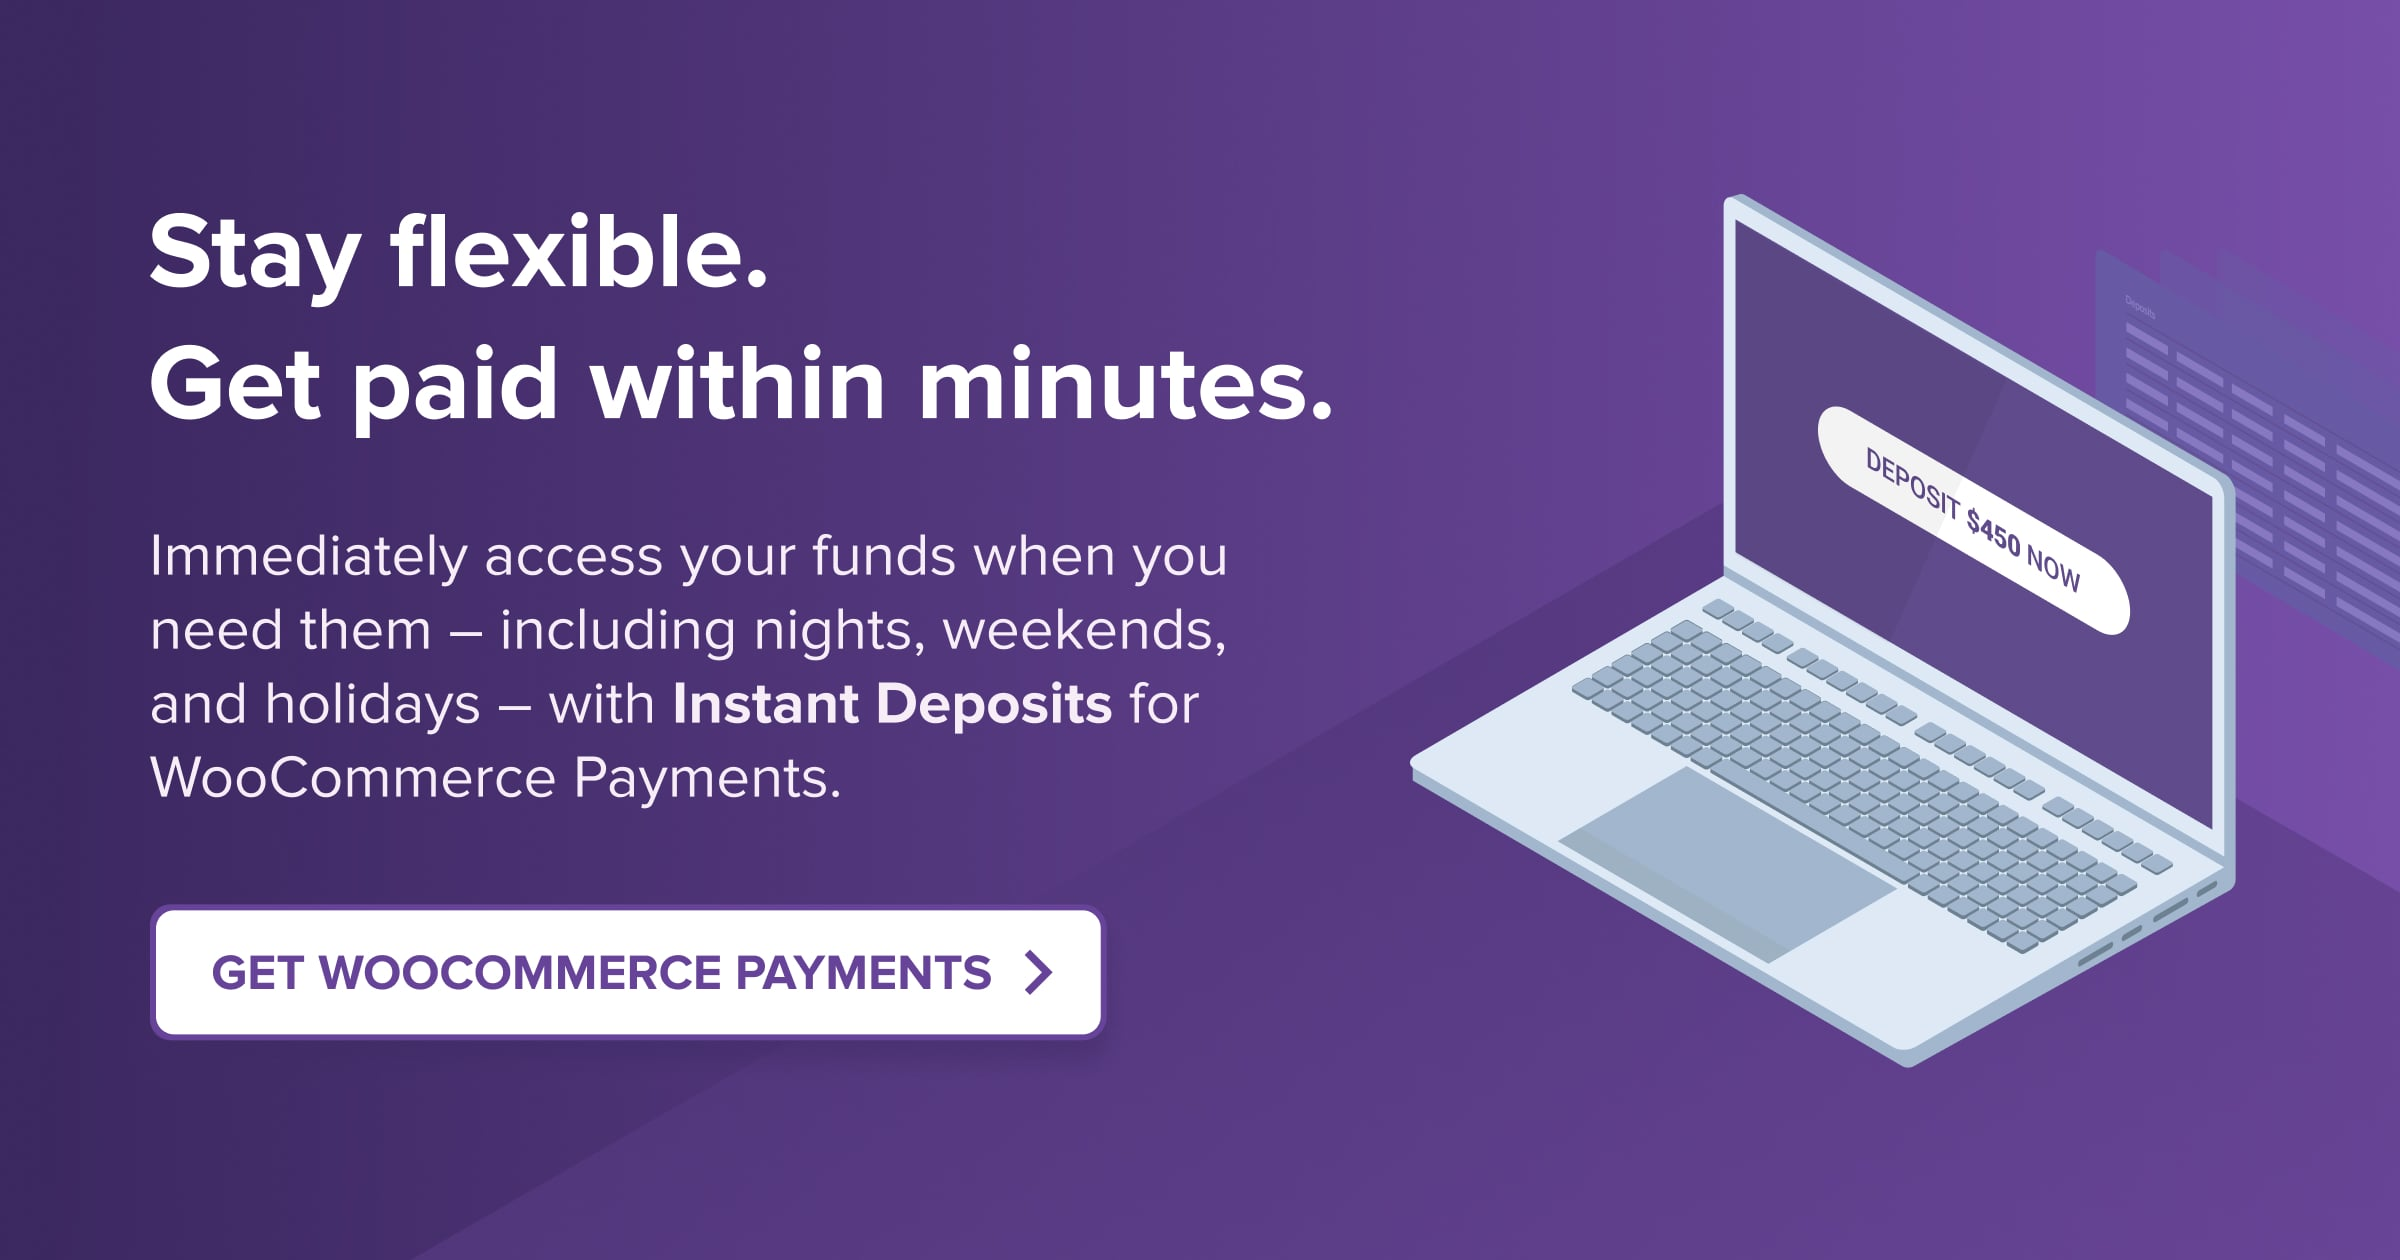 Get Instant Deposits with WooCommerce Payments